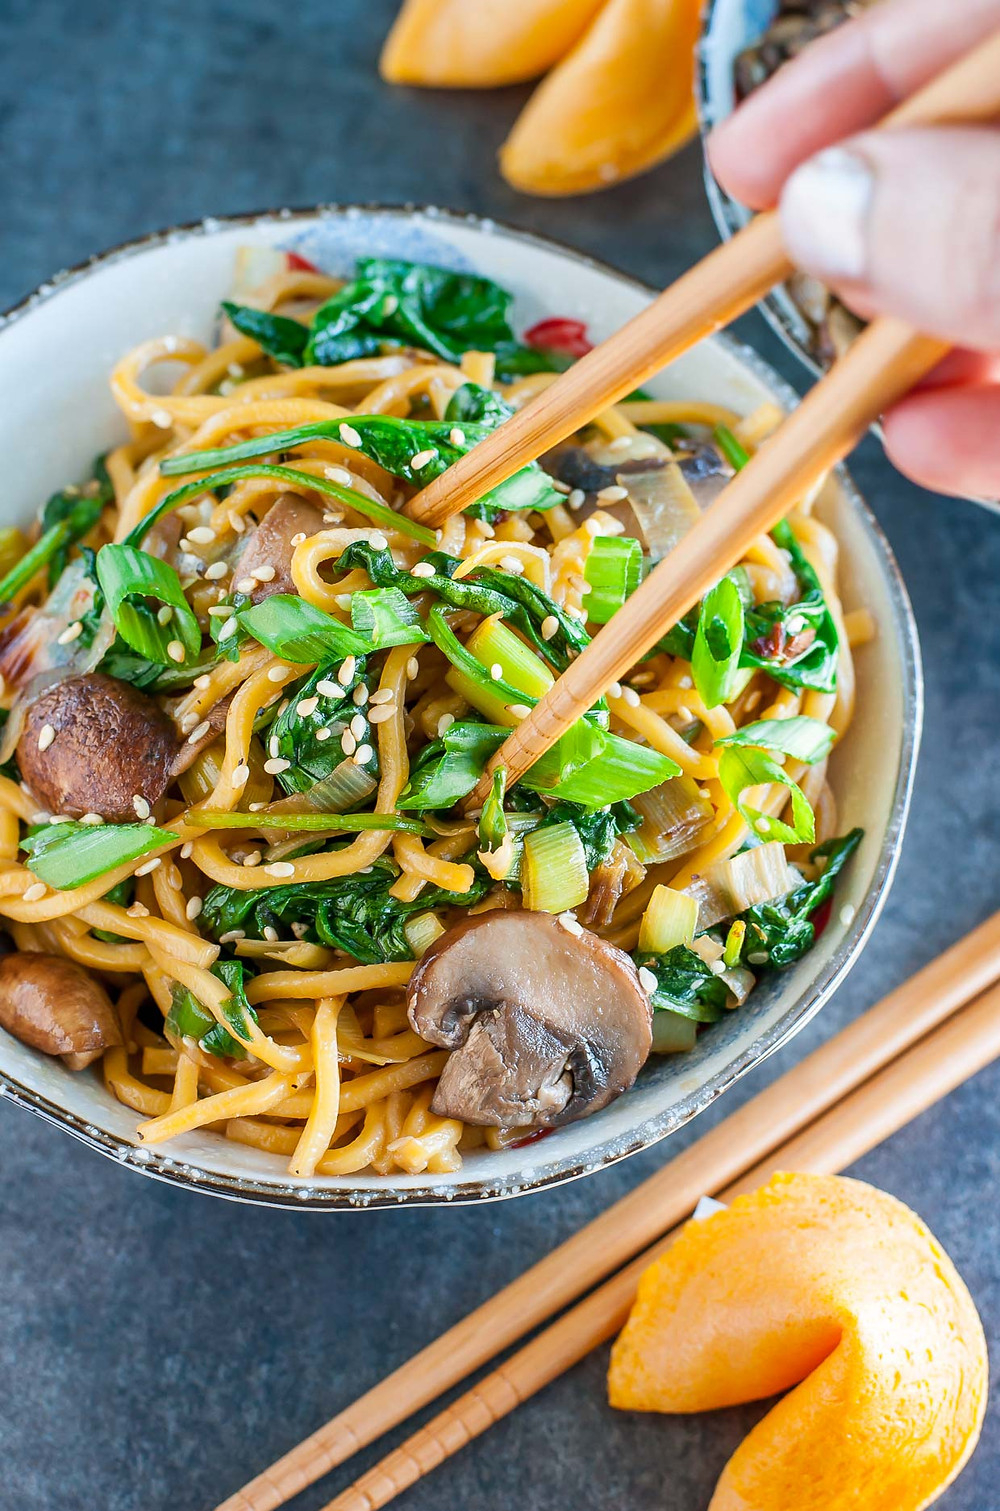 vegan noodles with spinach, mushrooms and leeks in a bowl with chopsticks